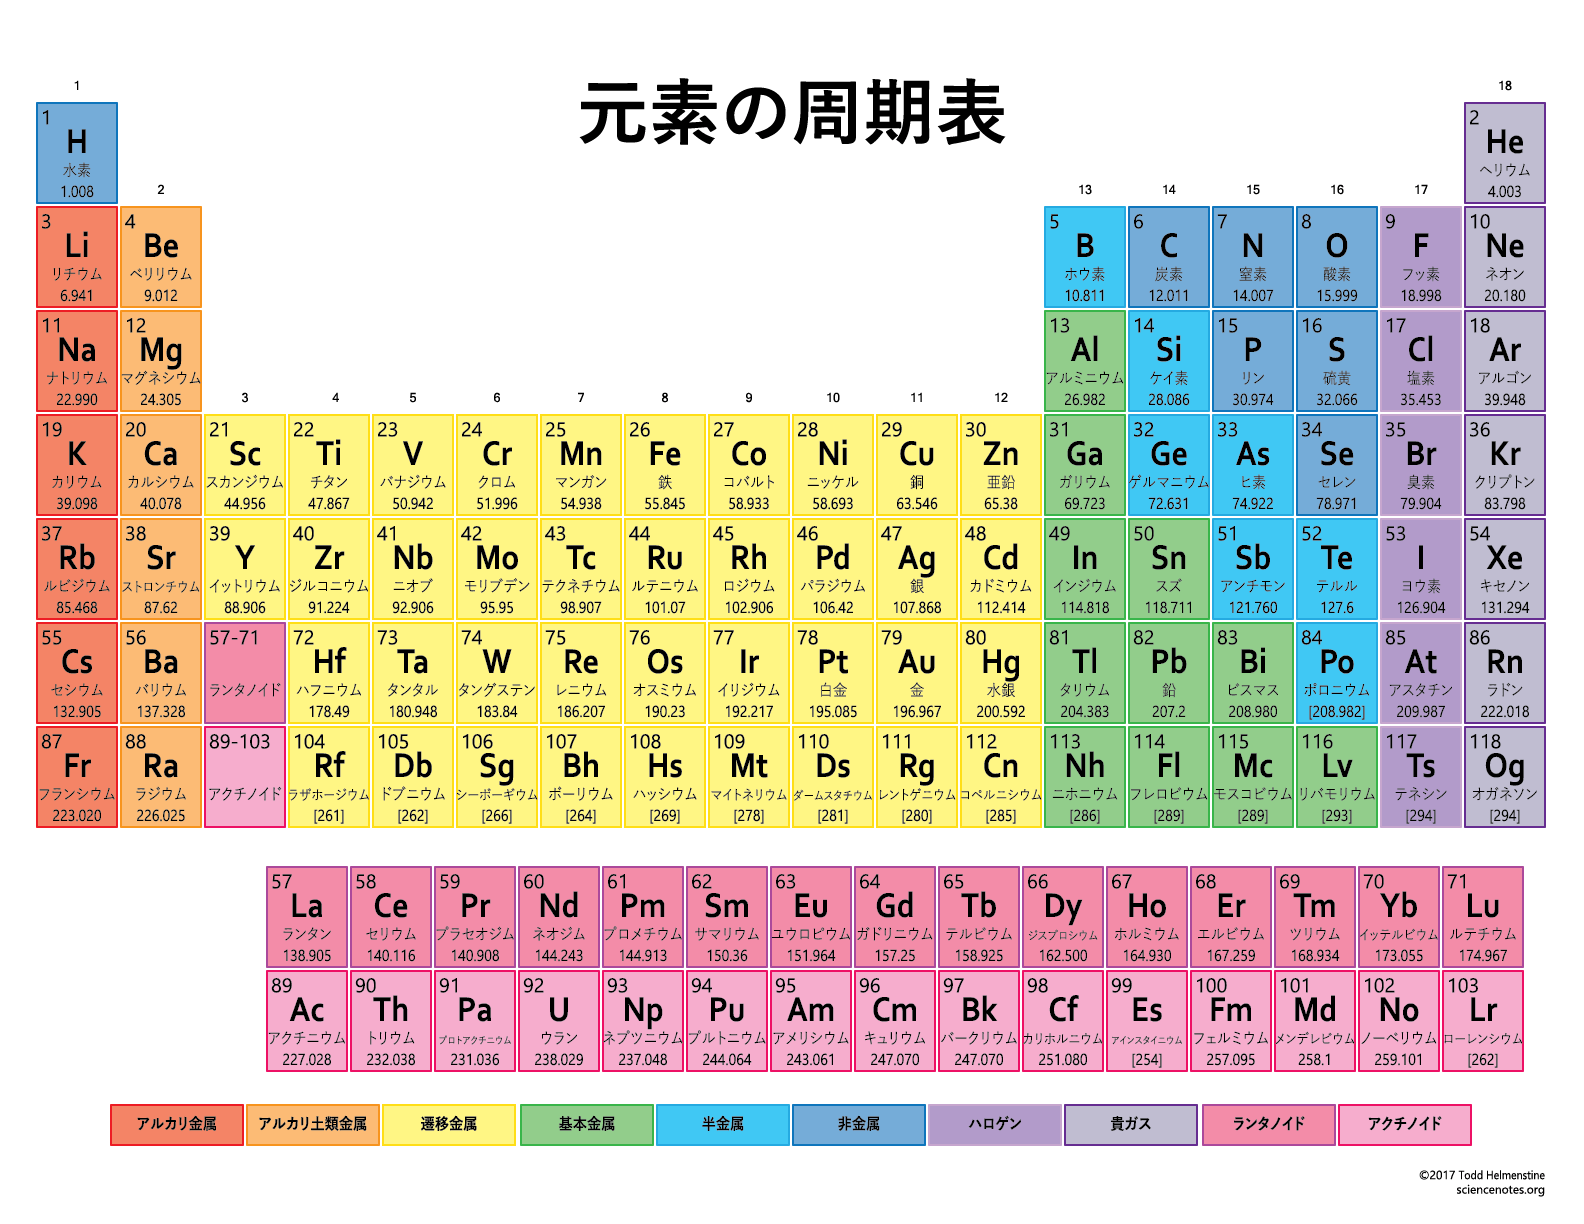 Genso no shuuki hyou japanese periodic table of the elements genso shuuki hyou this color periodic table contains all 118 elements atomic numbers urtaz Gallery